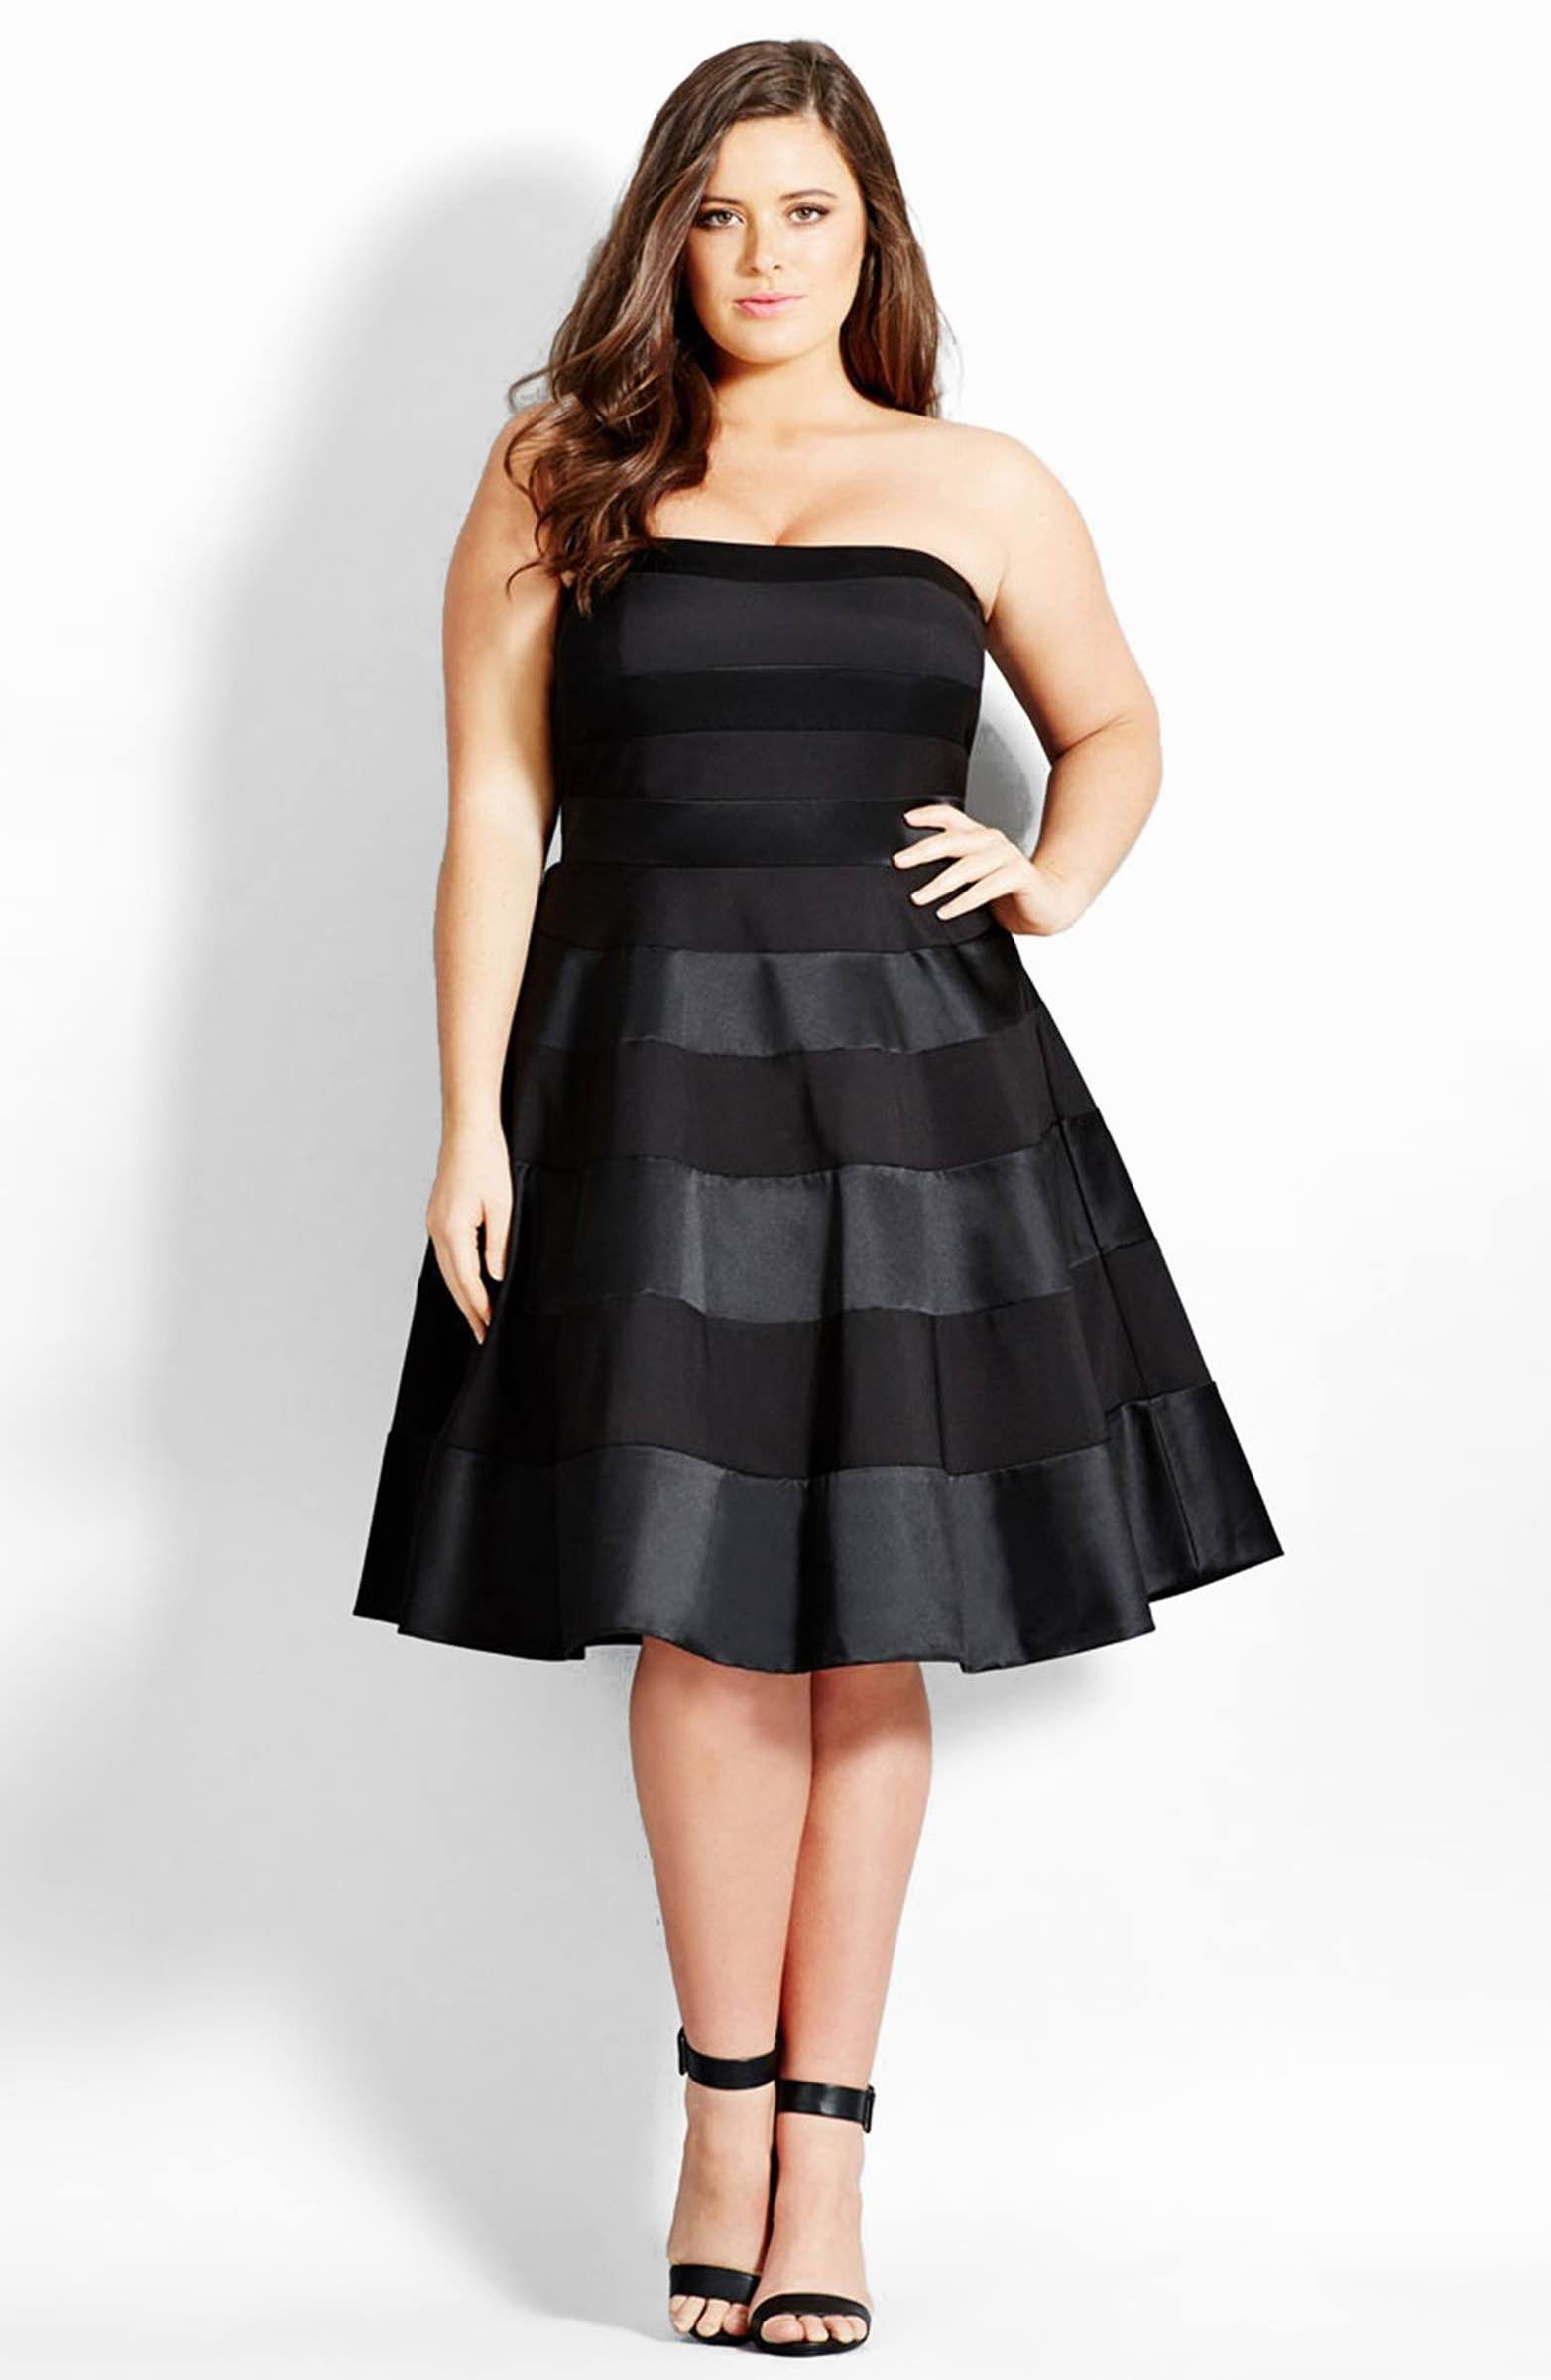 Super City Chic 'Miss Shady' Stripe Strapless Fit & Flare Party Dress MF-69